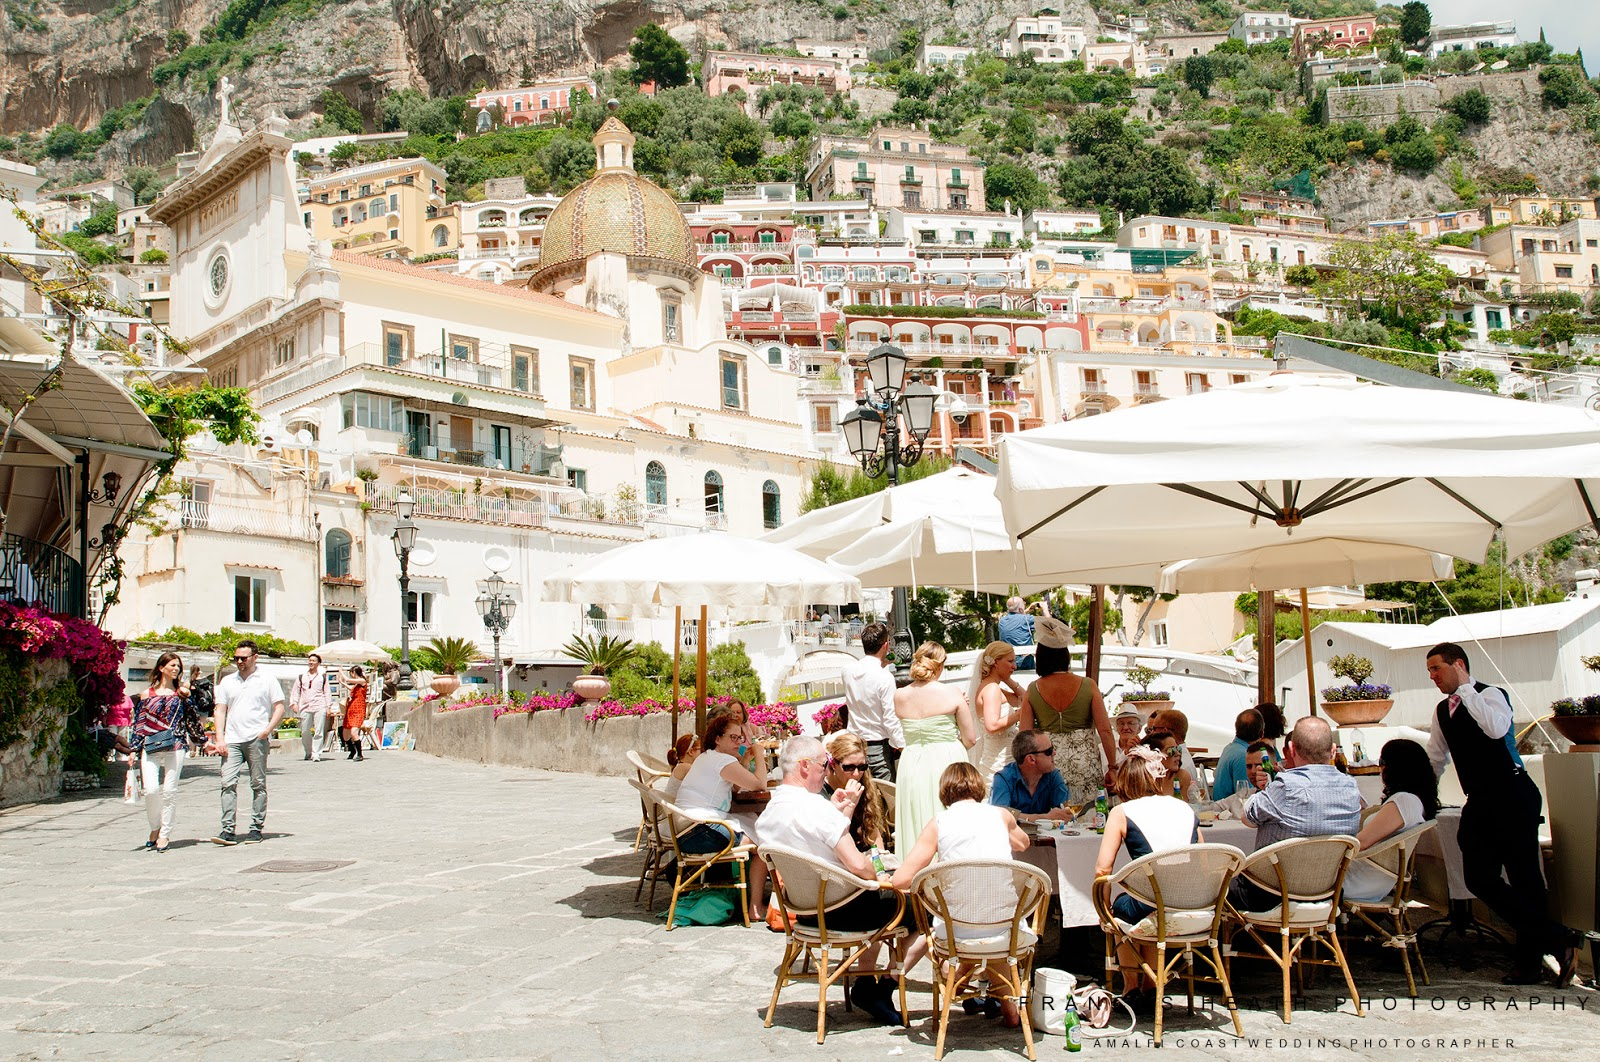 Wedding reception at Hotel Covo Dei Saraceni in Positano